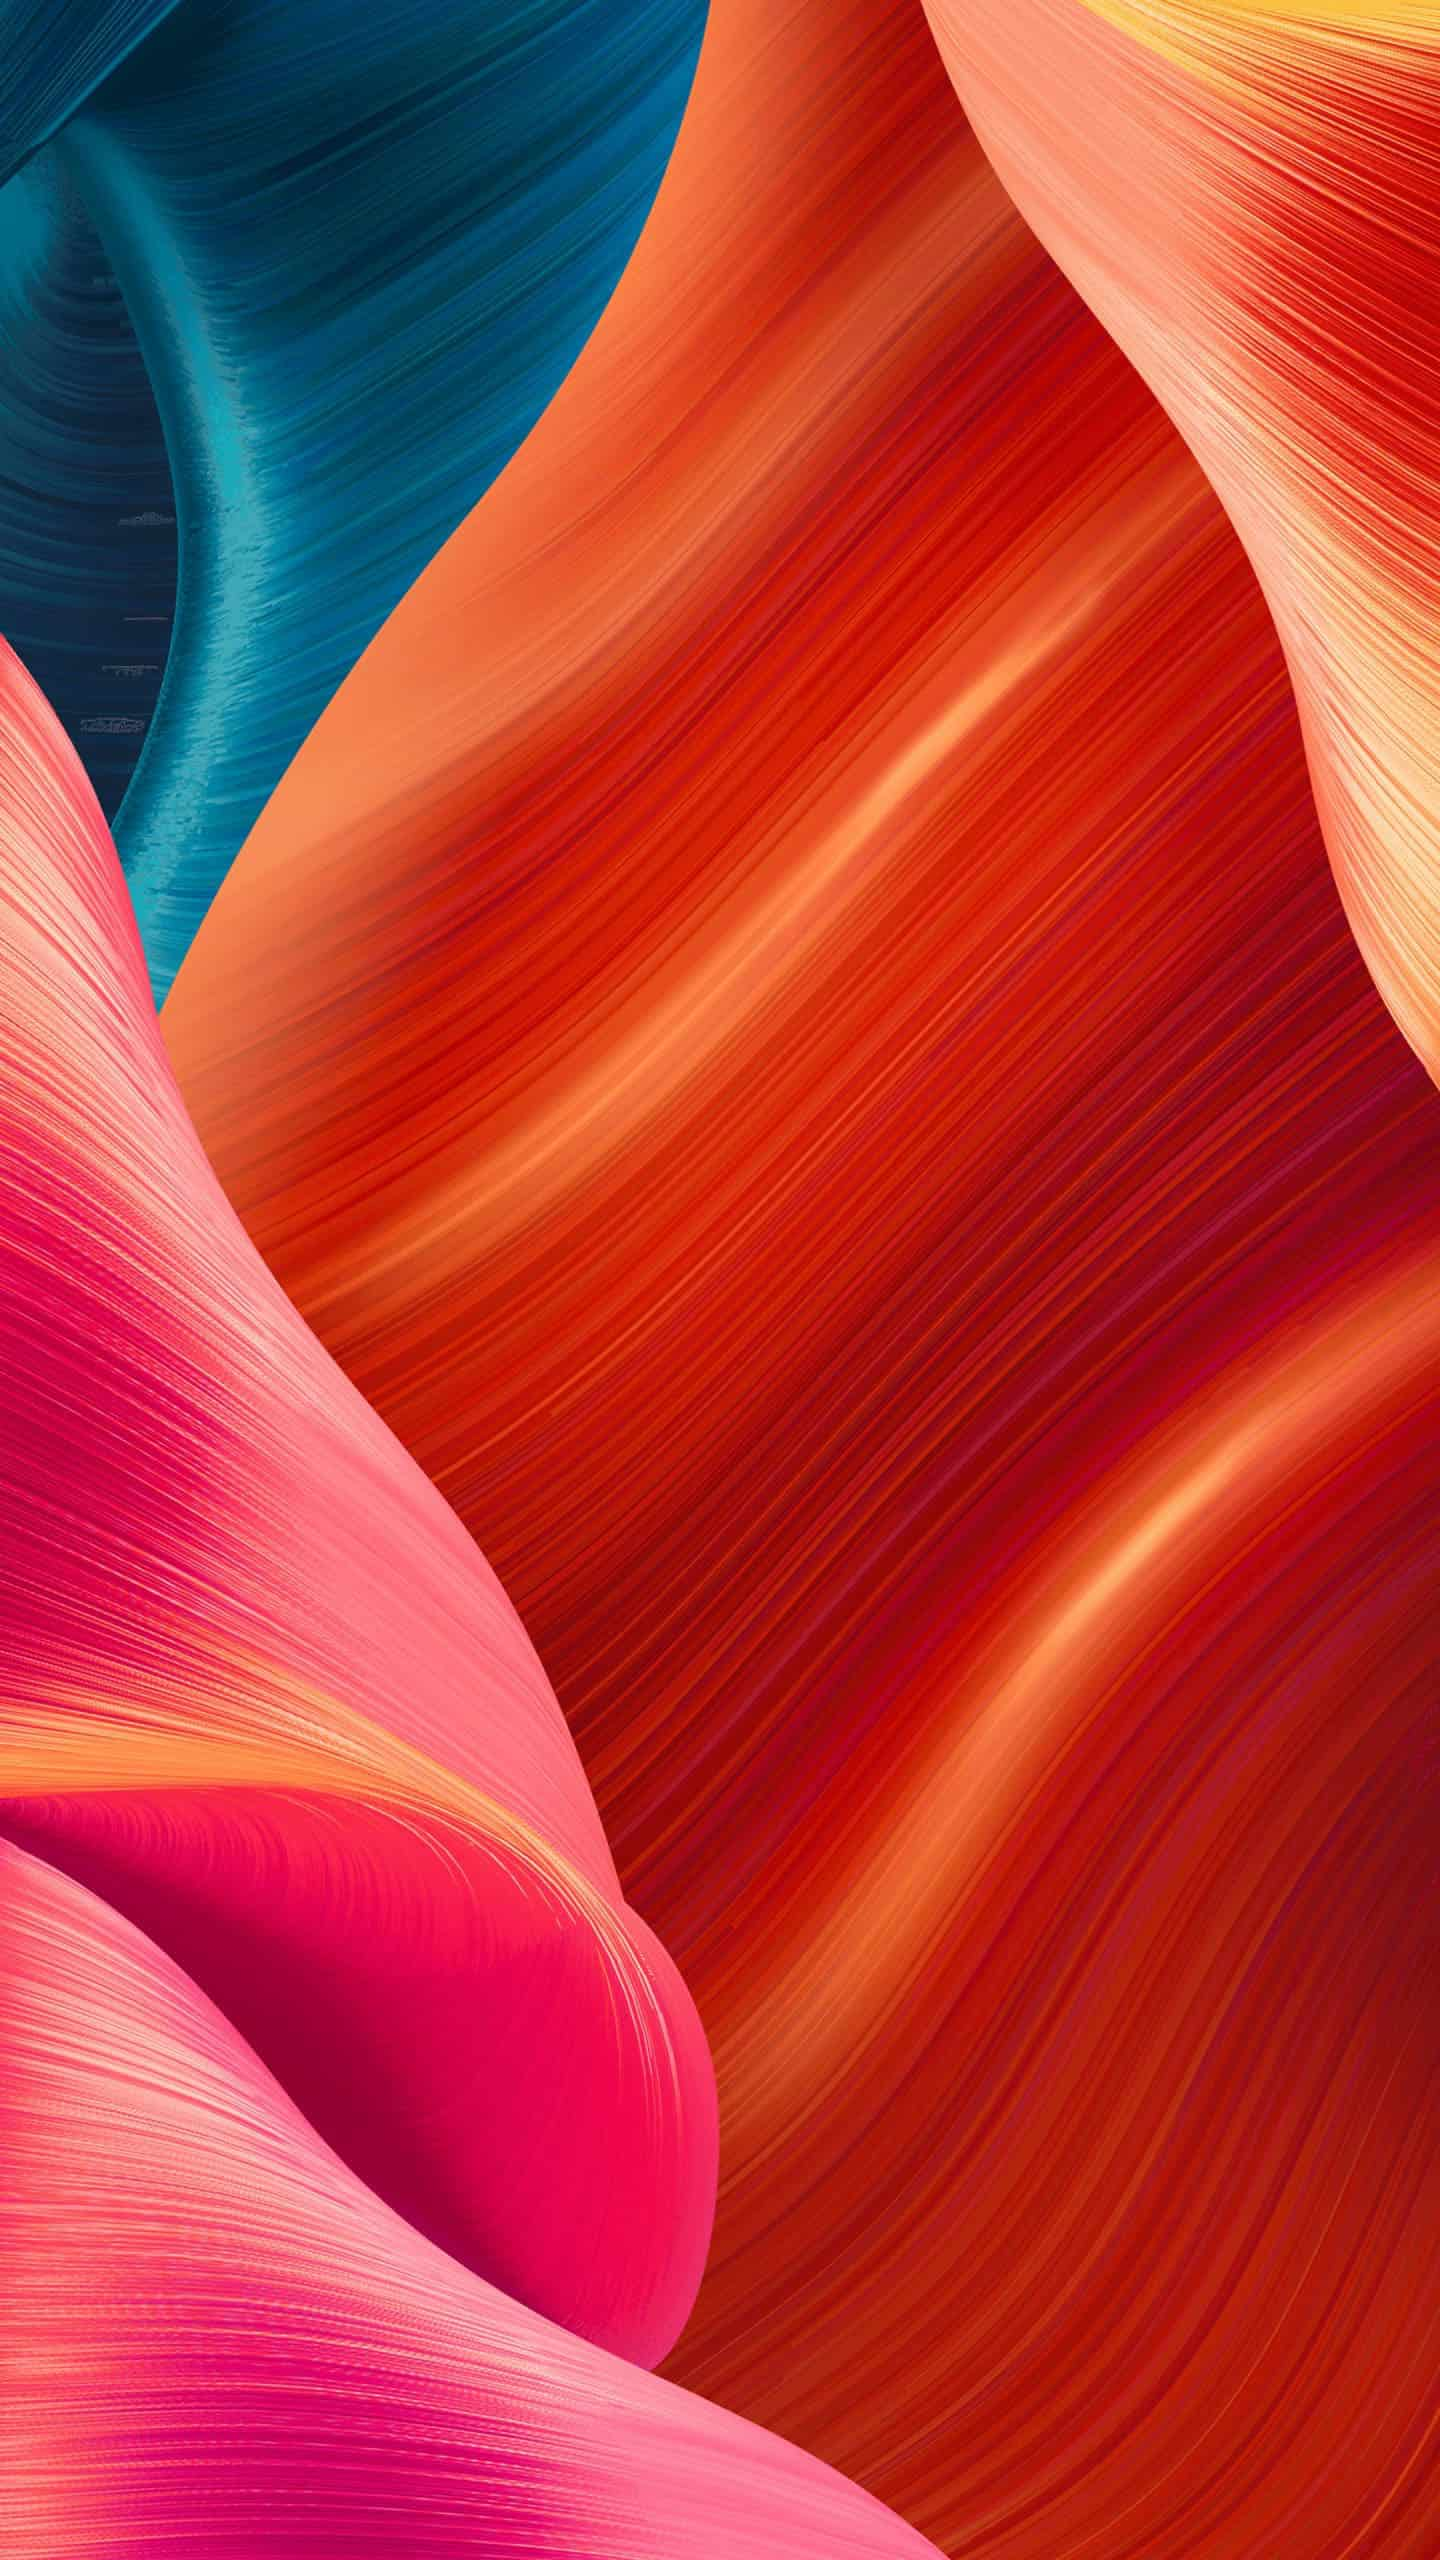 coloros-7-2560x1440-android-10-abstract-4k-22394